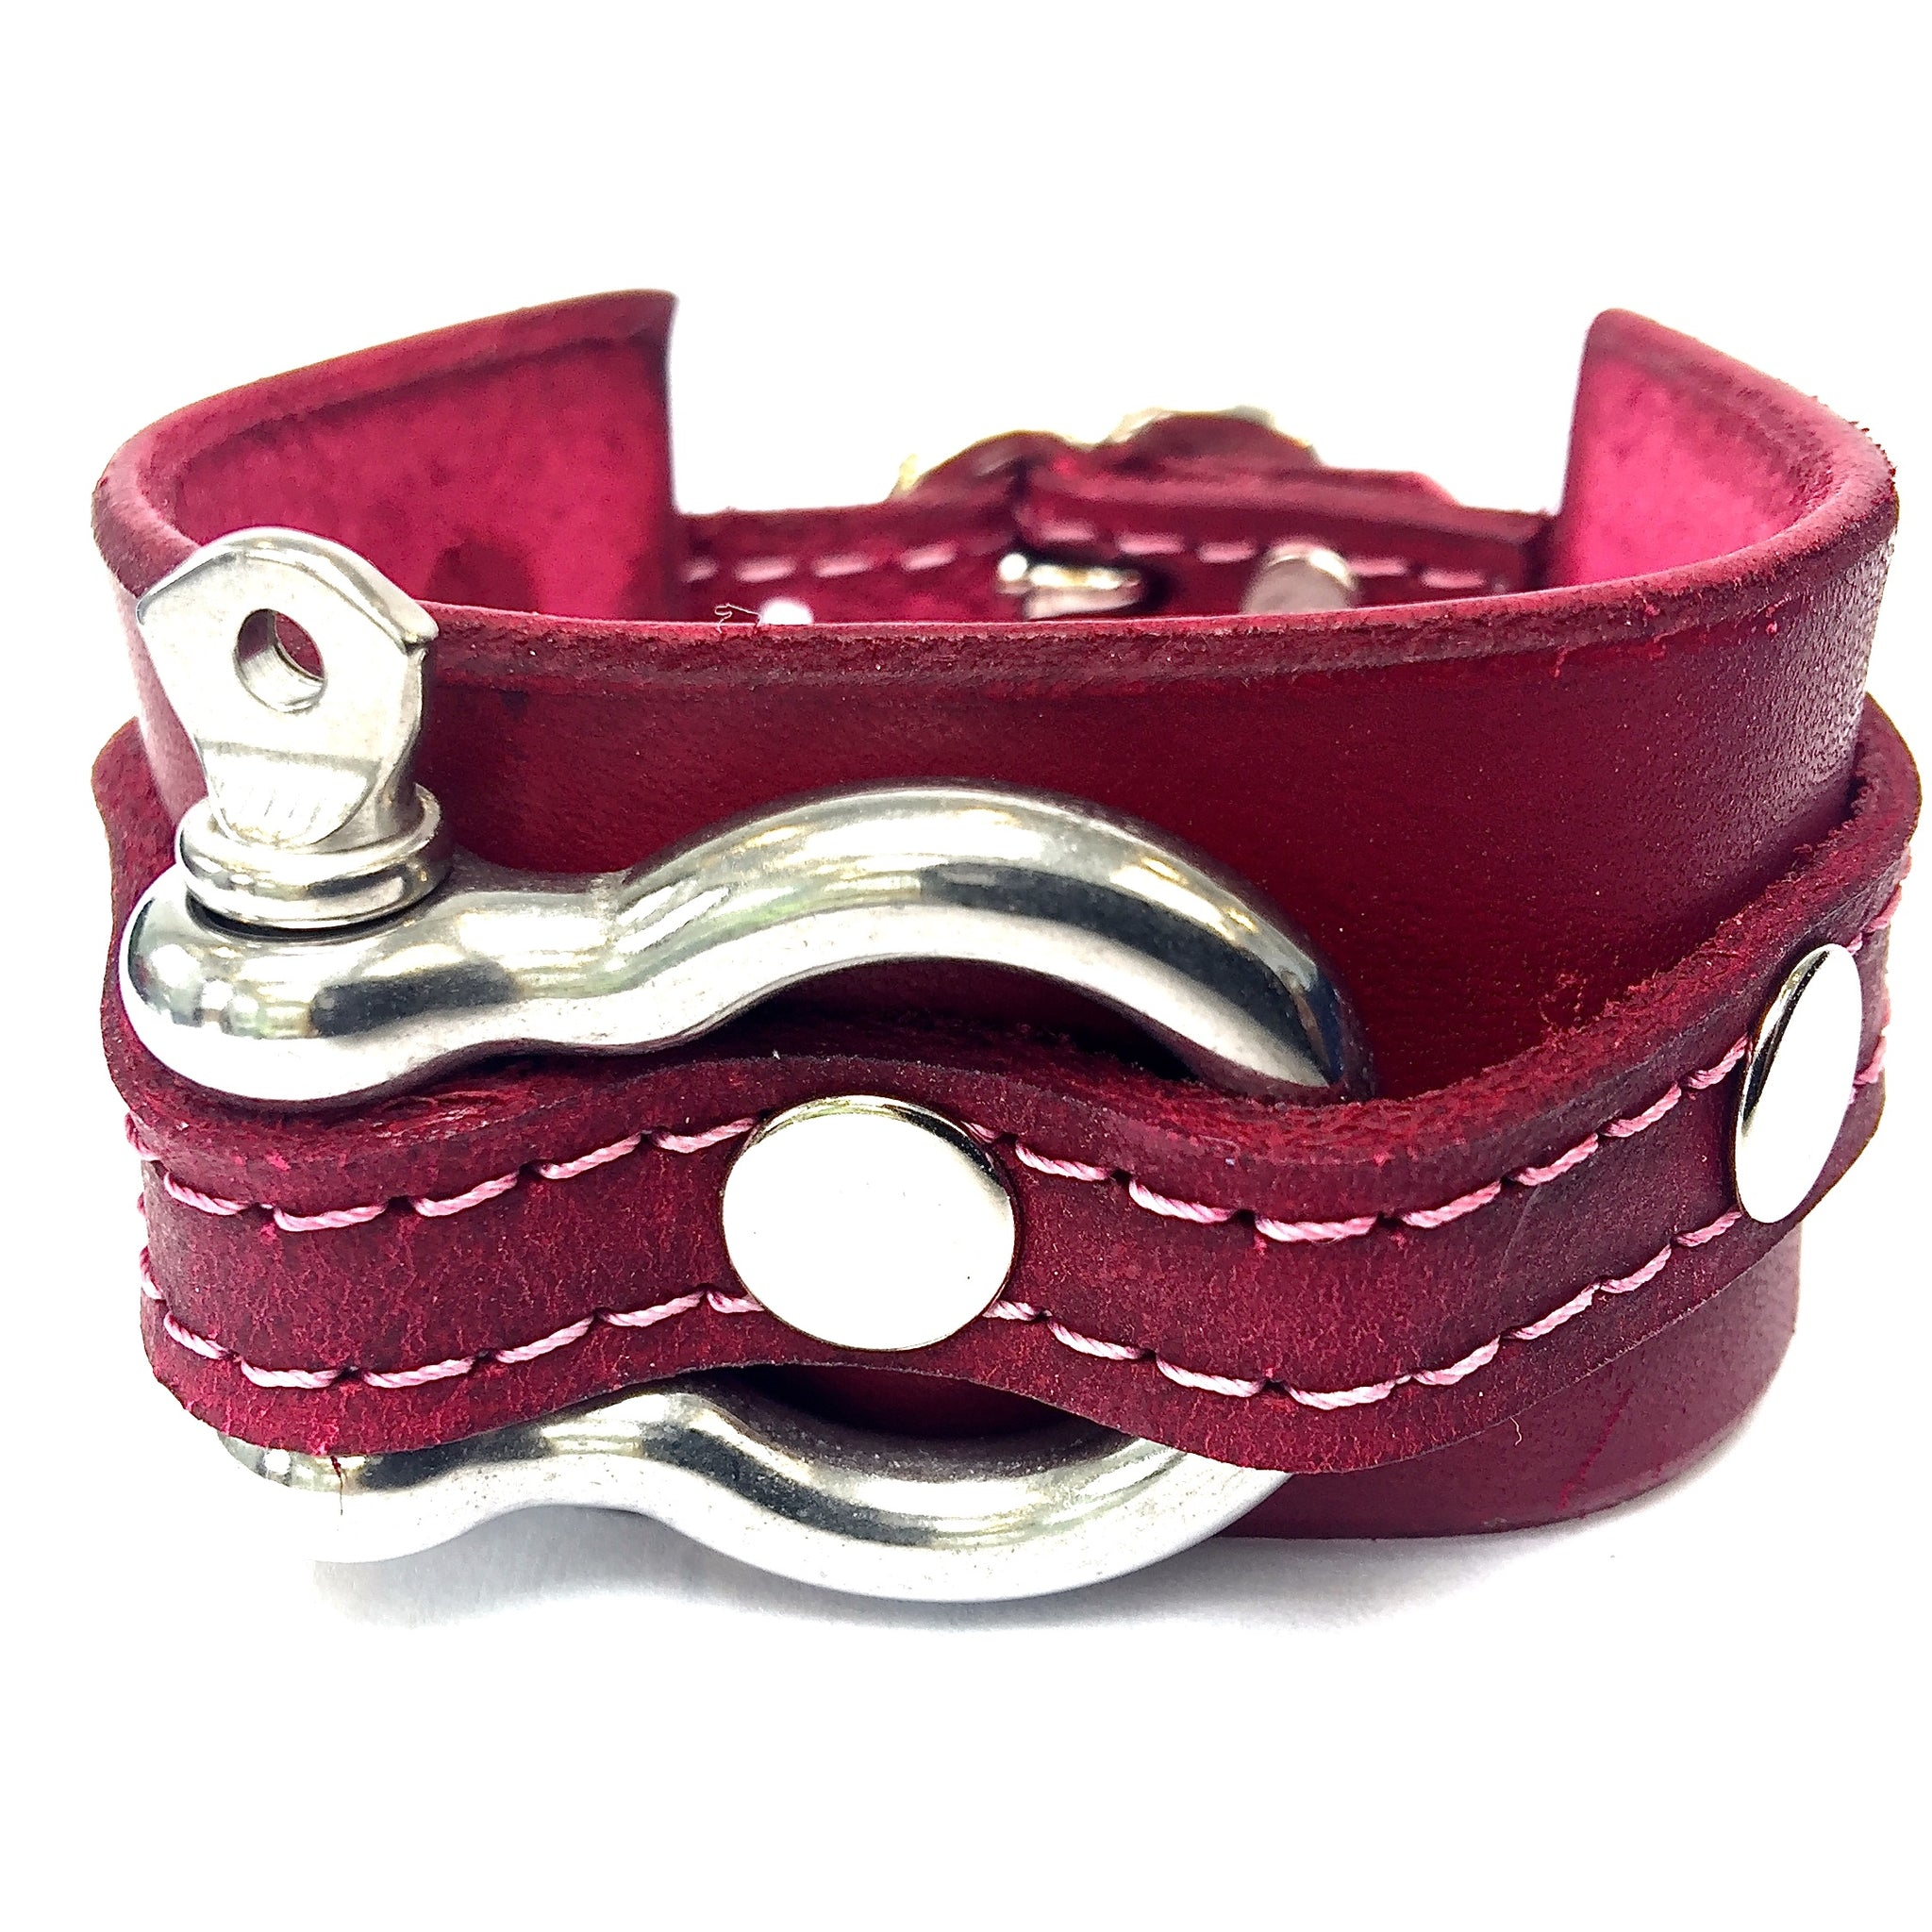 leather cuff with anchor shackle Raspberry by nyet jewelry.